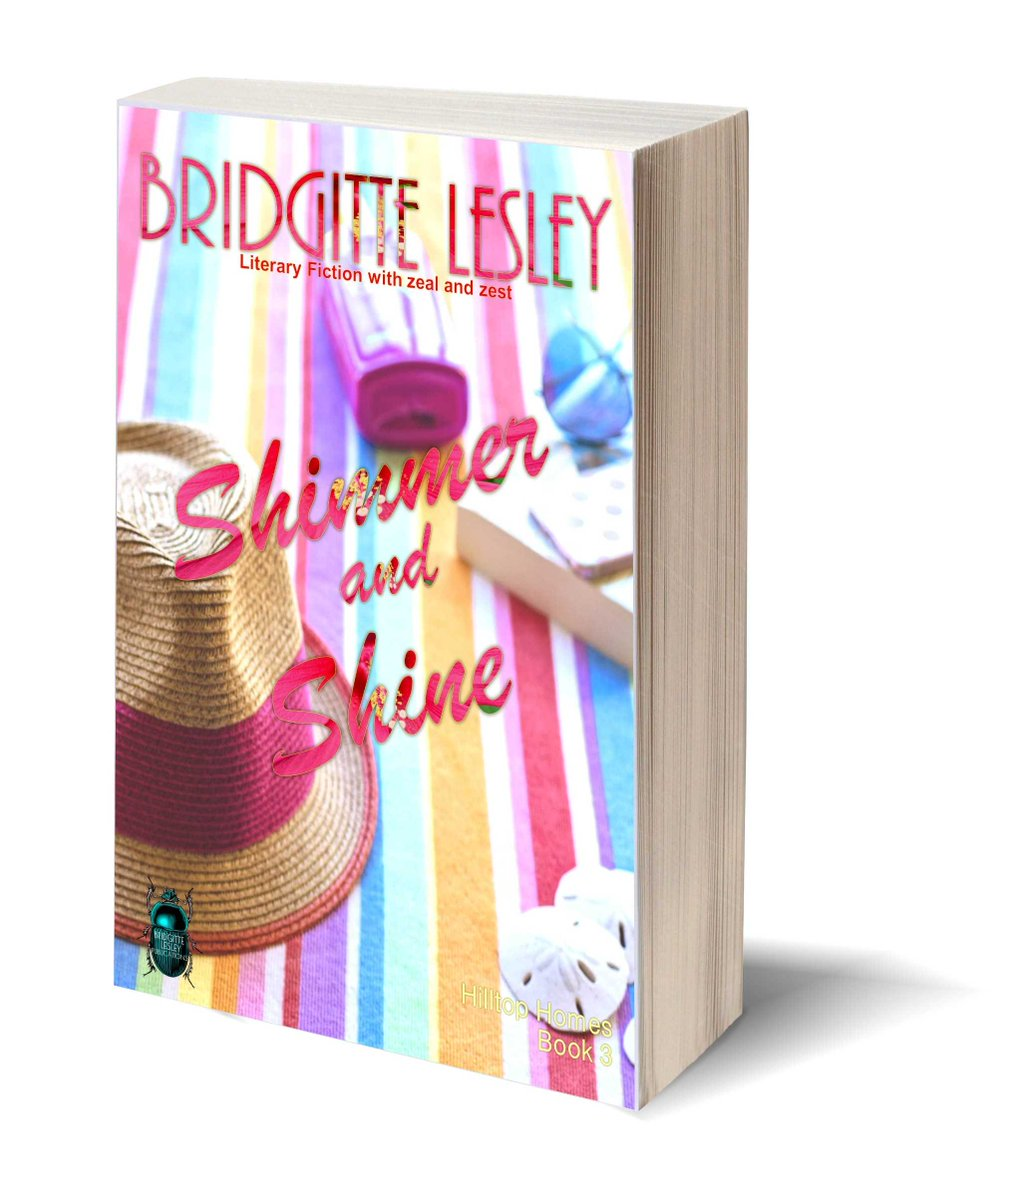 "When one person rocks the boat all hell breaks loose! ★SHIMMER AND SHINE★ - - Smashwords http://bit.ly/3d8GwTw  - - - -  pic.twitter.com/1w16l2inpj #ASMSG #bookaday ""@BridgitteLesley http://bridgittelesley.wordpress.com/"